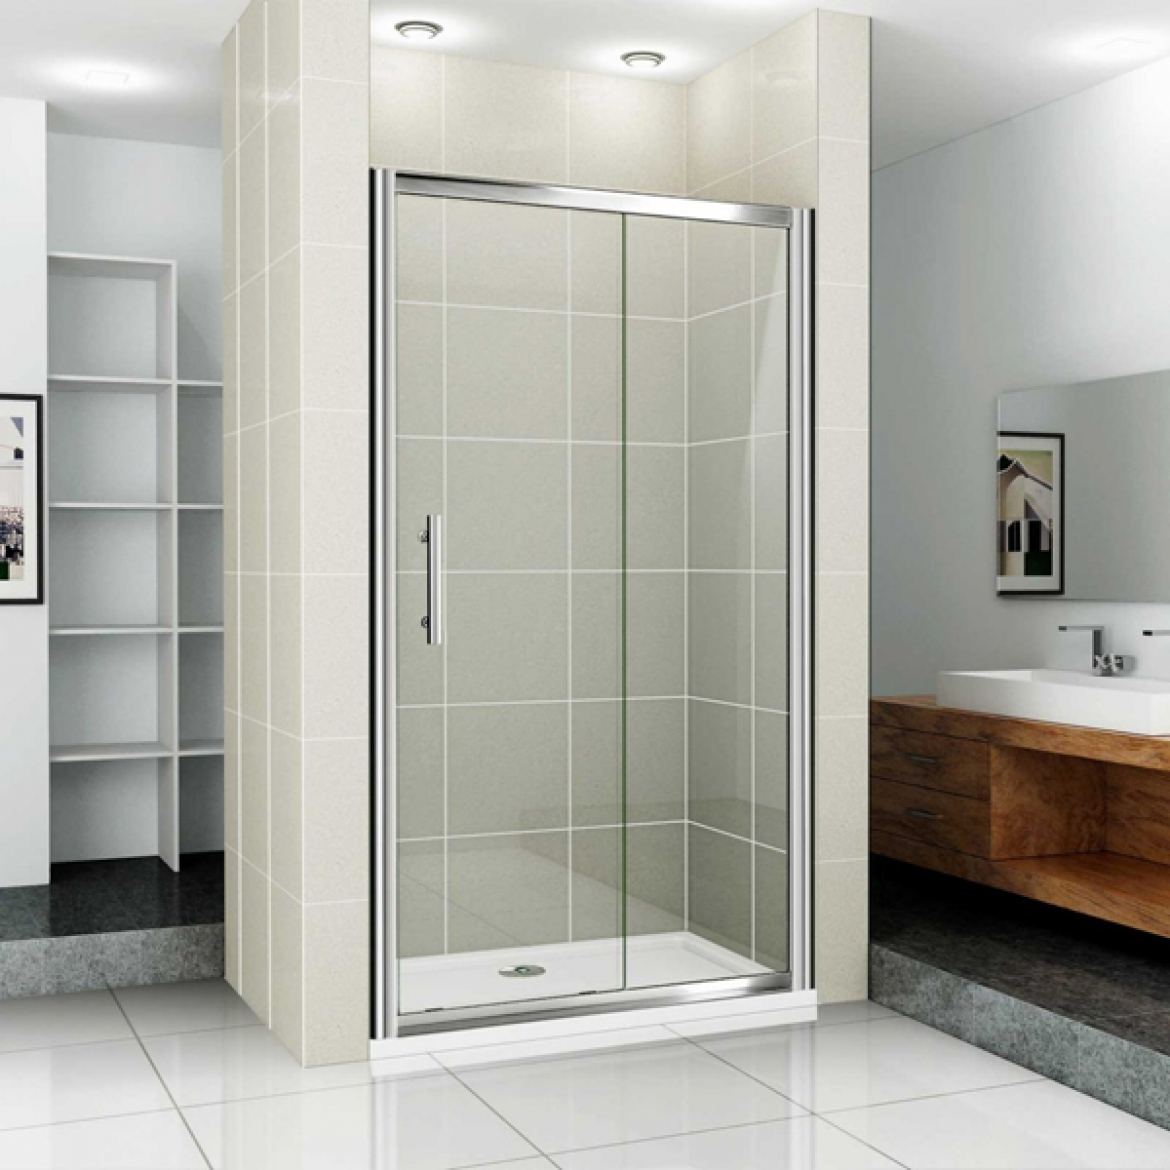 Wall to wall Shower screen  sliding door